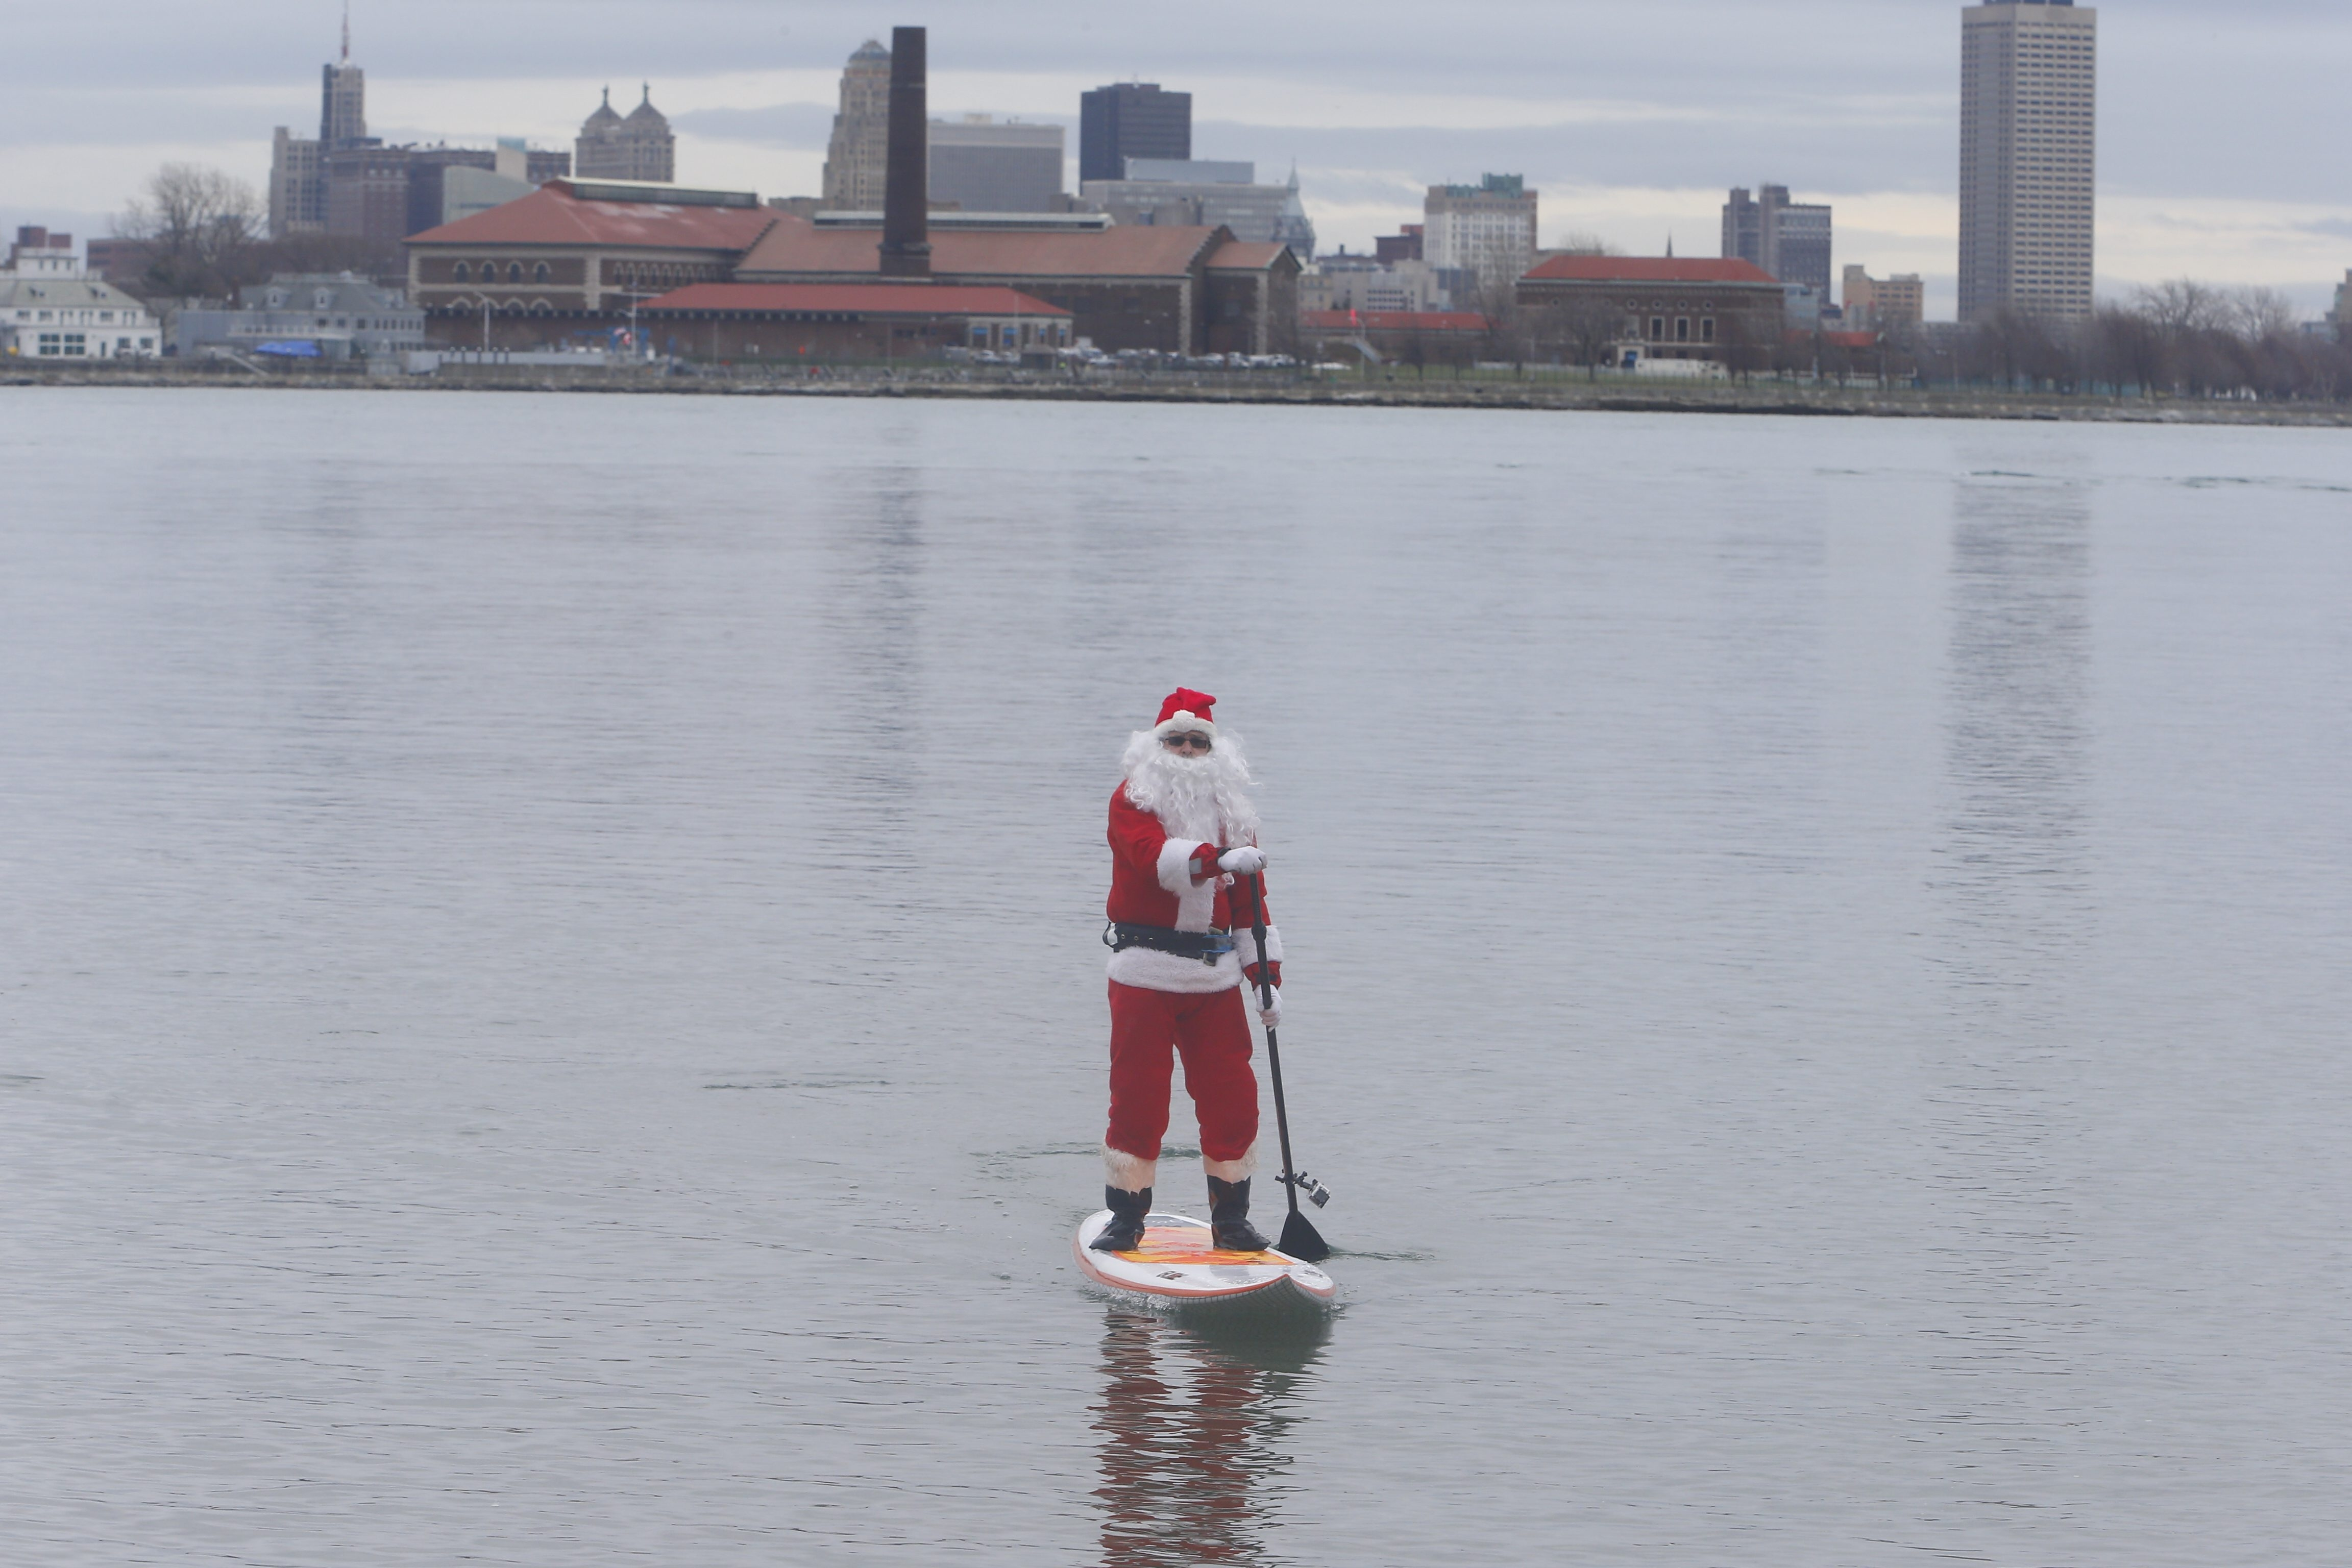 The weather won't be as calm Christmas  Eve and  Christmas Day as it was Tuesday when Surfing Santa aka John Fulton did his annual stunt in the Niagara River  bringing awareness to the homeless at Mather Arch / Niagara River in Fort Erie, Ont. (John Hickey/Buffalo News)